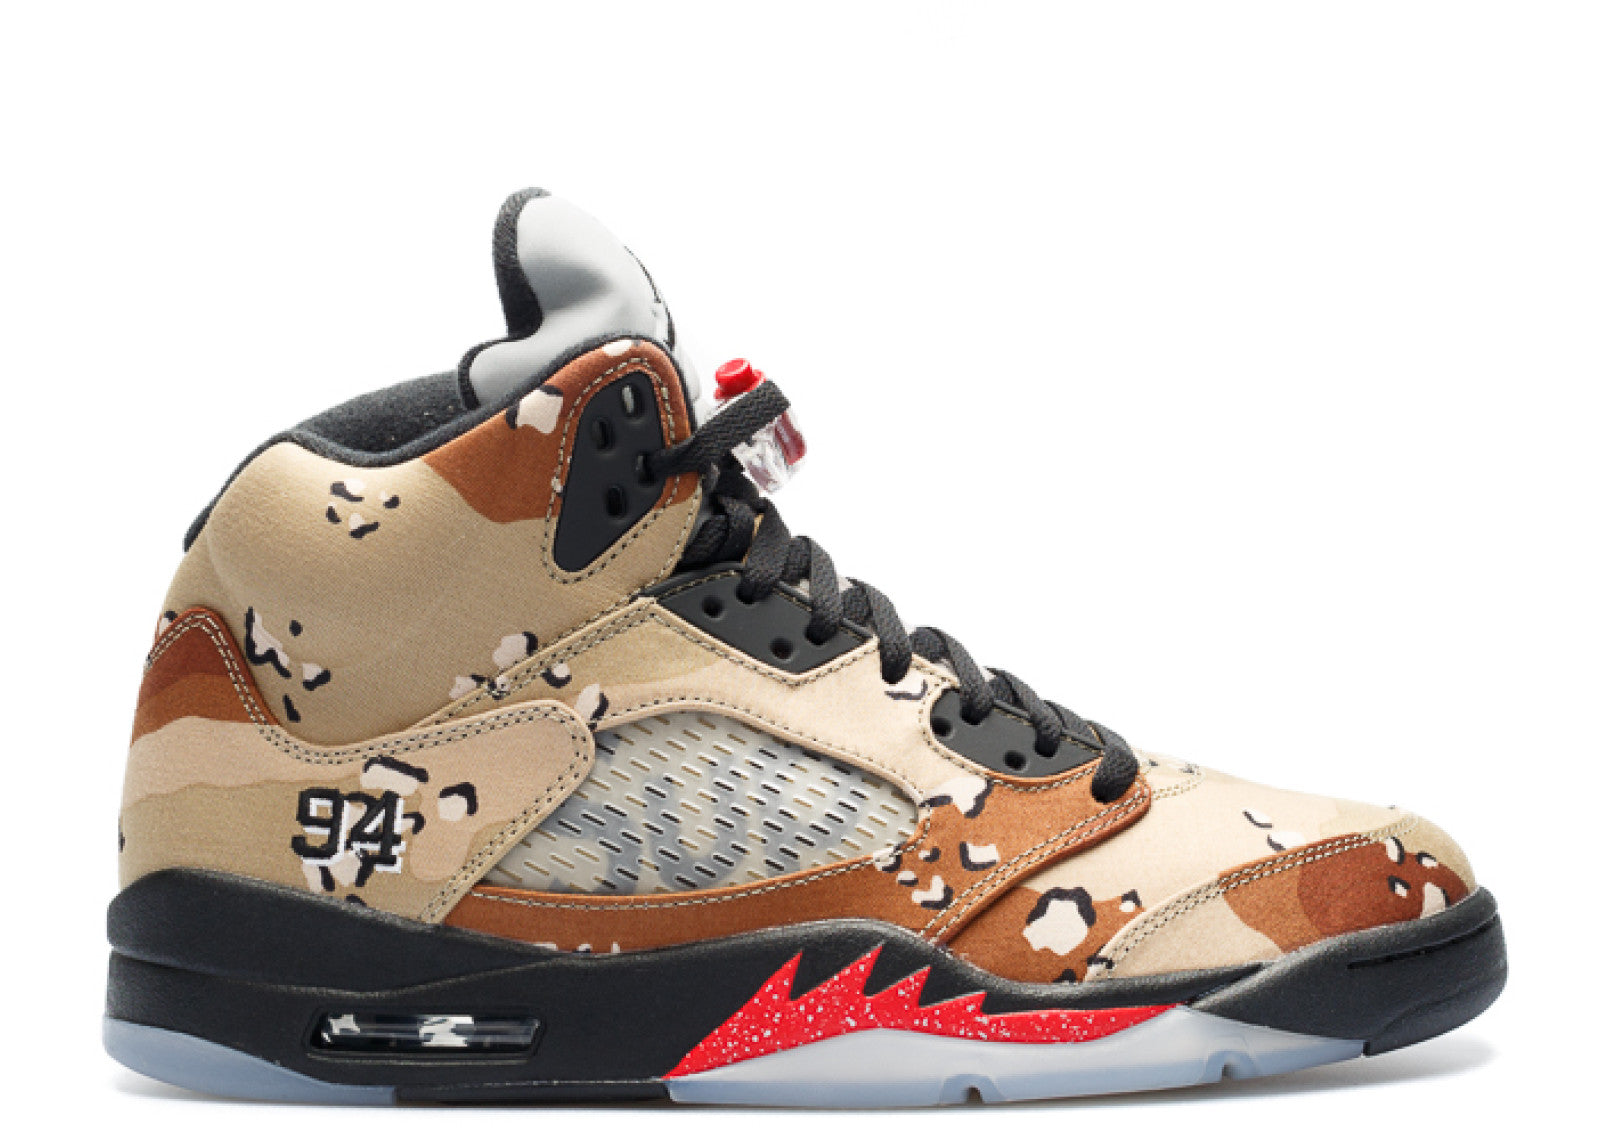 check out 018de a3e35 AIR JORDAN 5 RETRO SUPREME